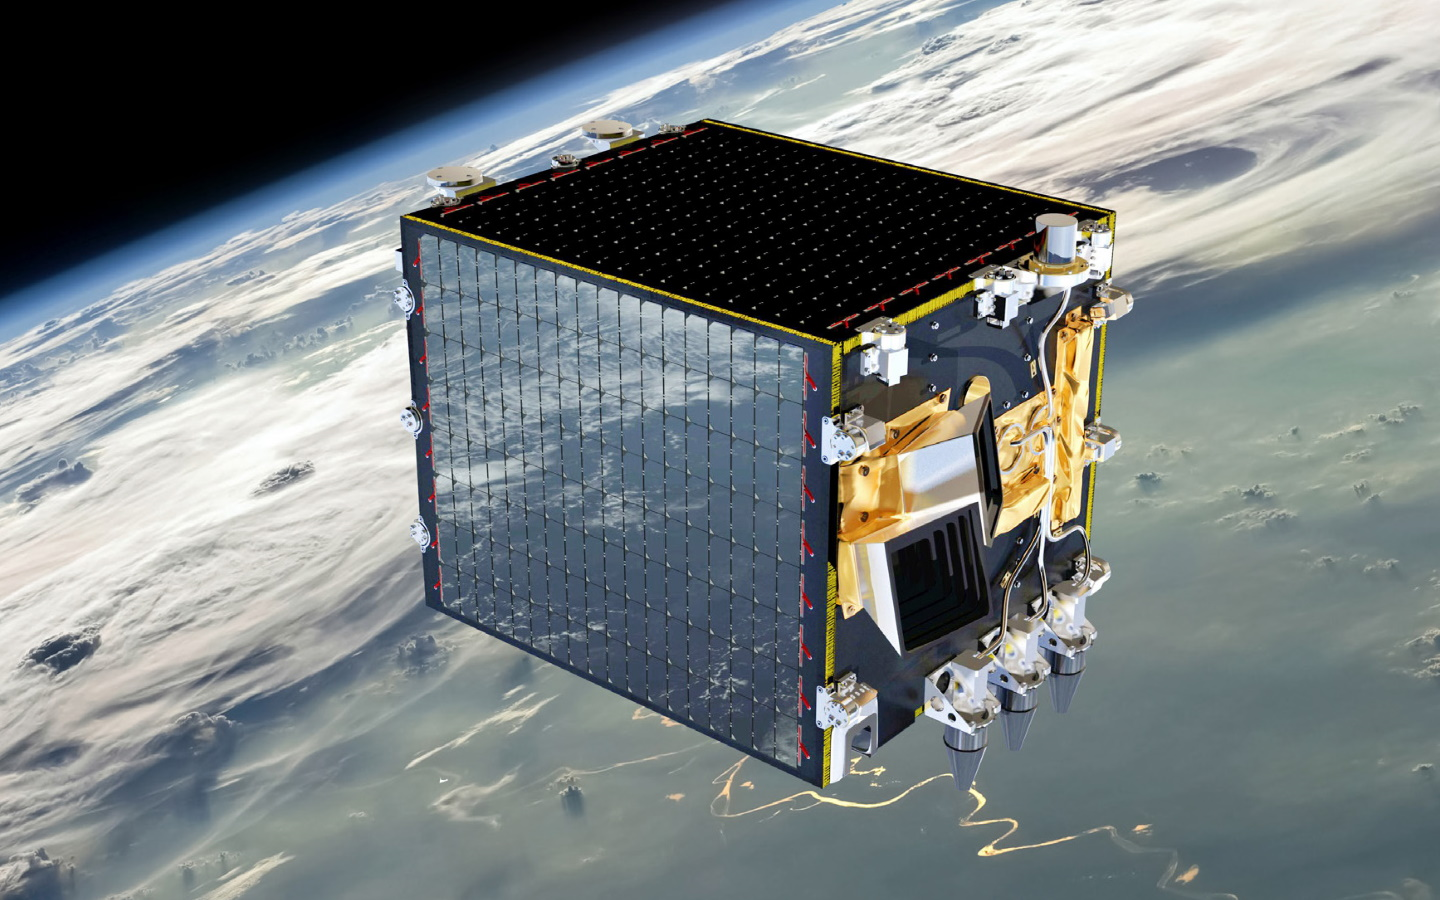 PROBA-V spacecraft